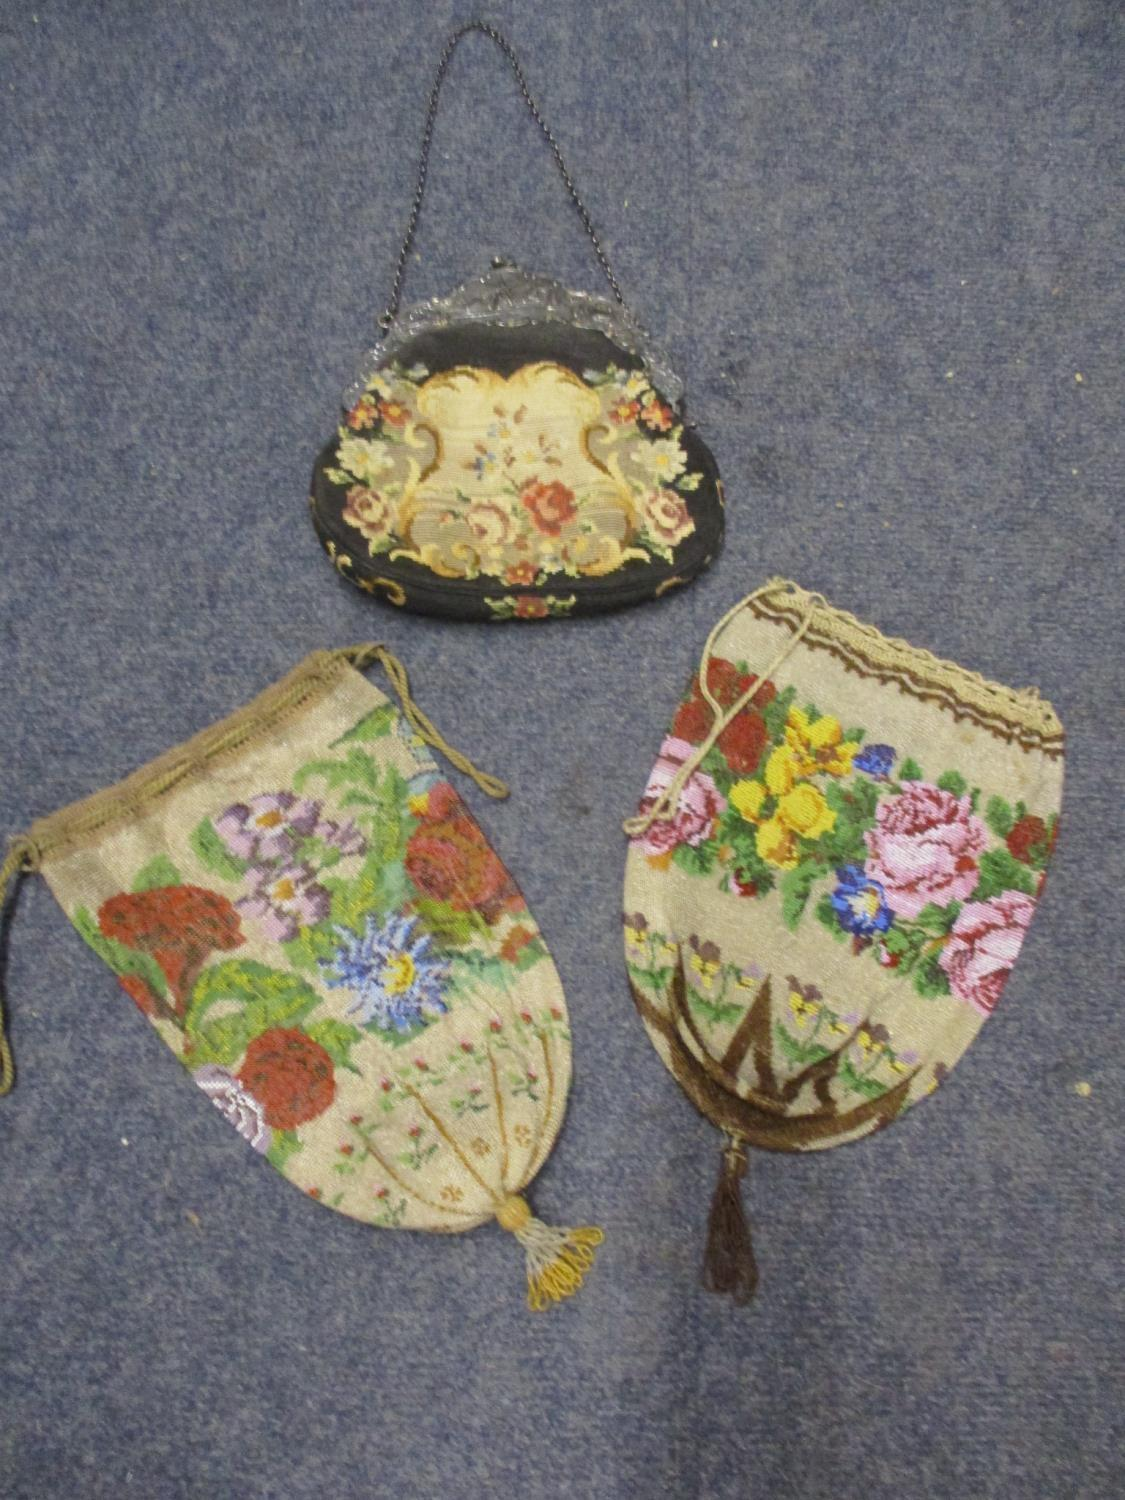 Two mid 20th century oriental style parasols depicting tulips, together with an early 20th century - Image 2 of 4